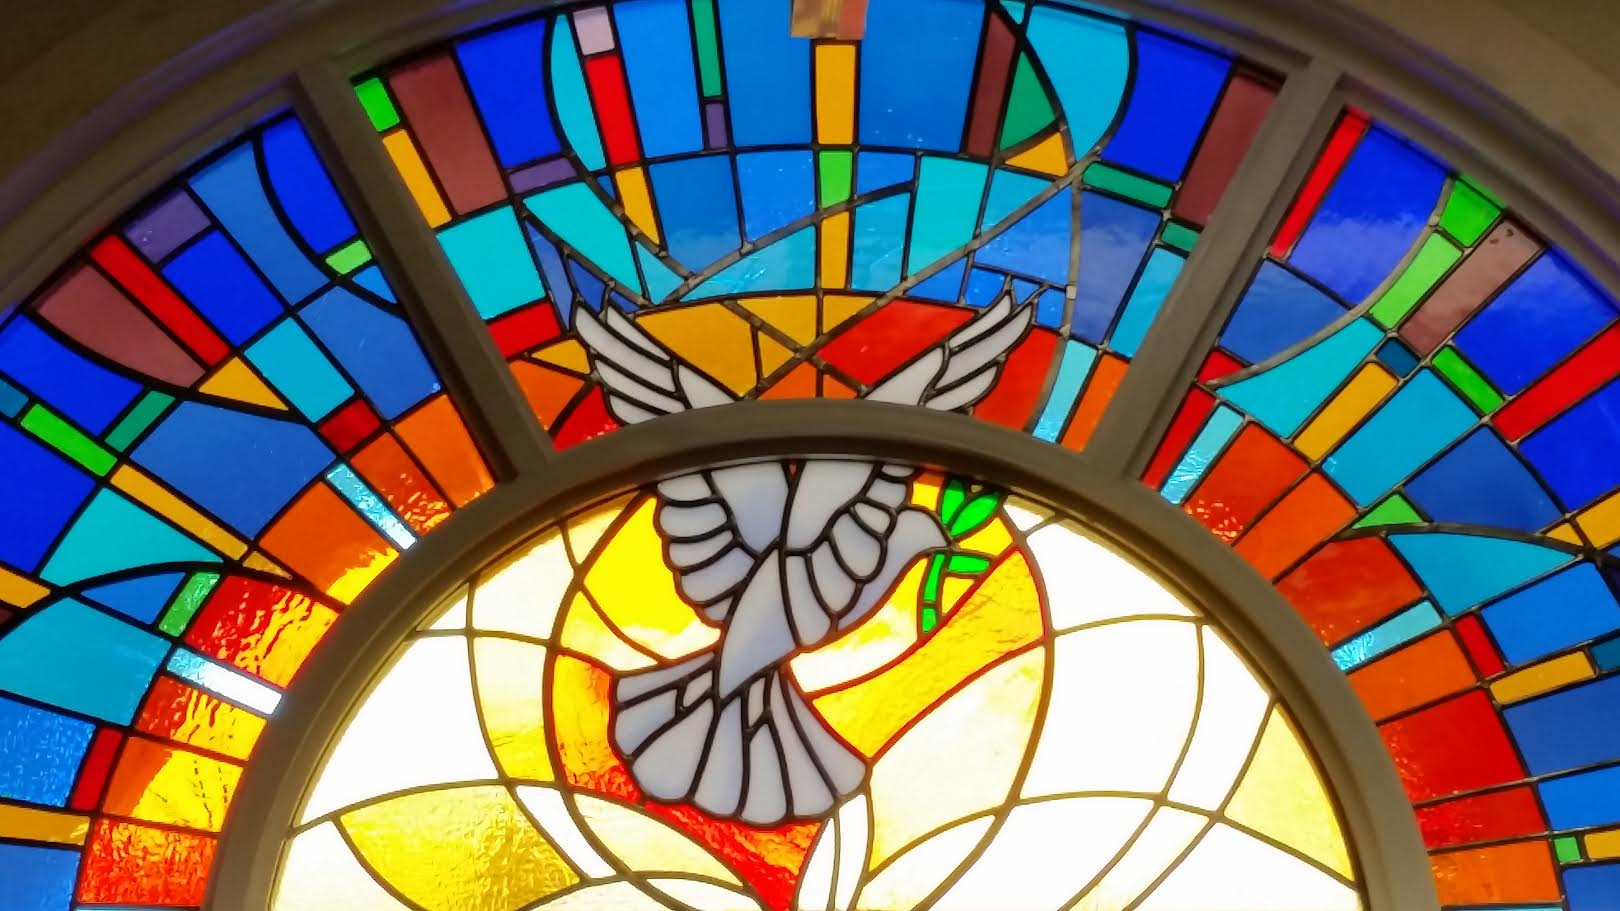 Our new stained glass window